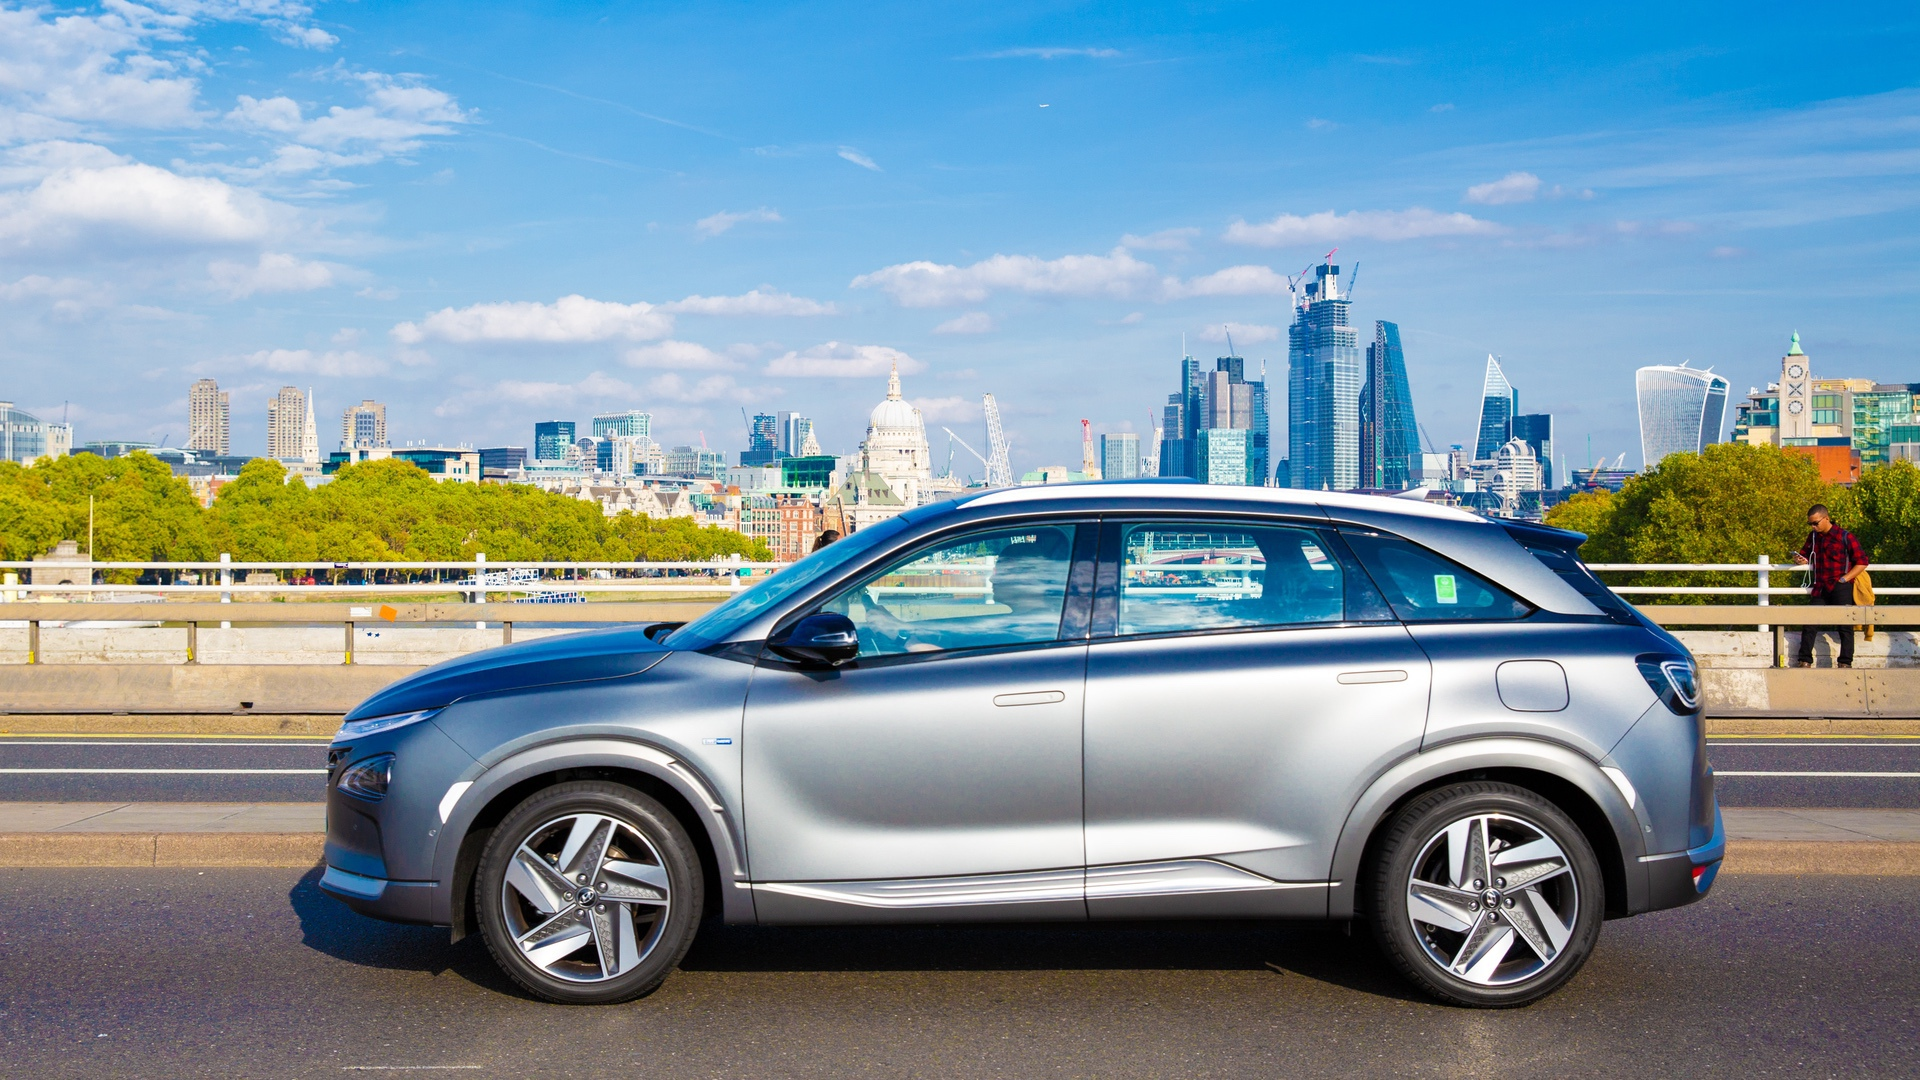 Hyundai_Nexo_London_0020